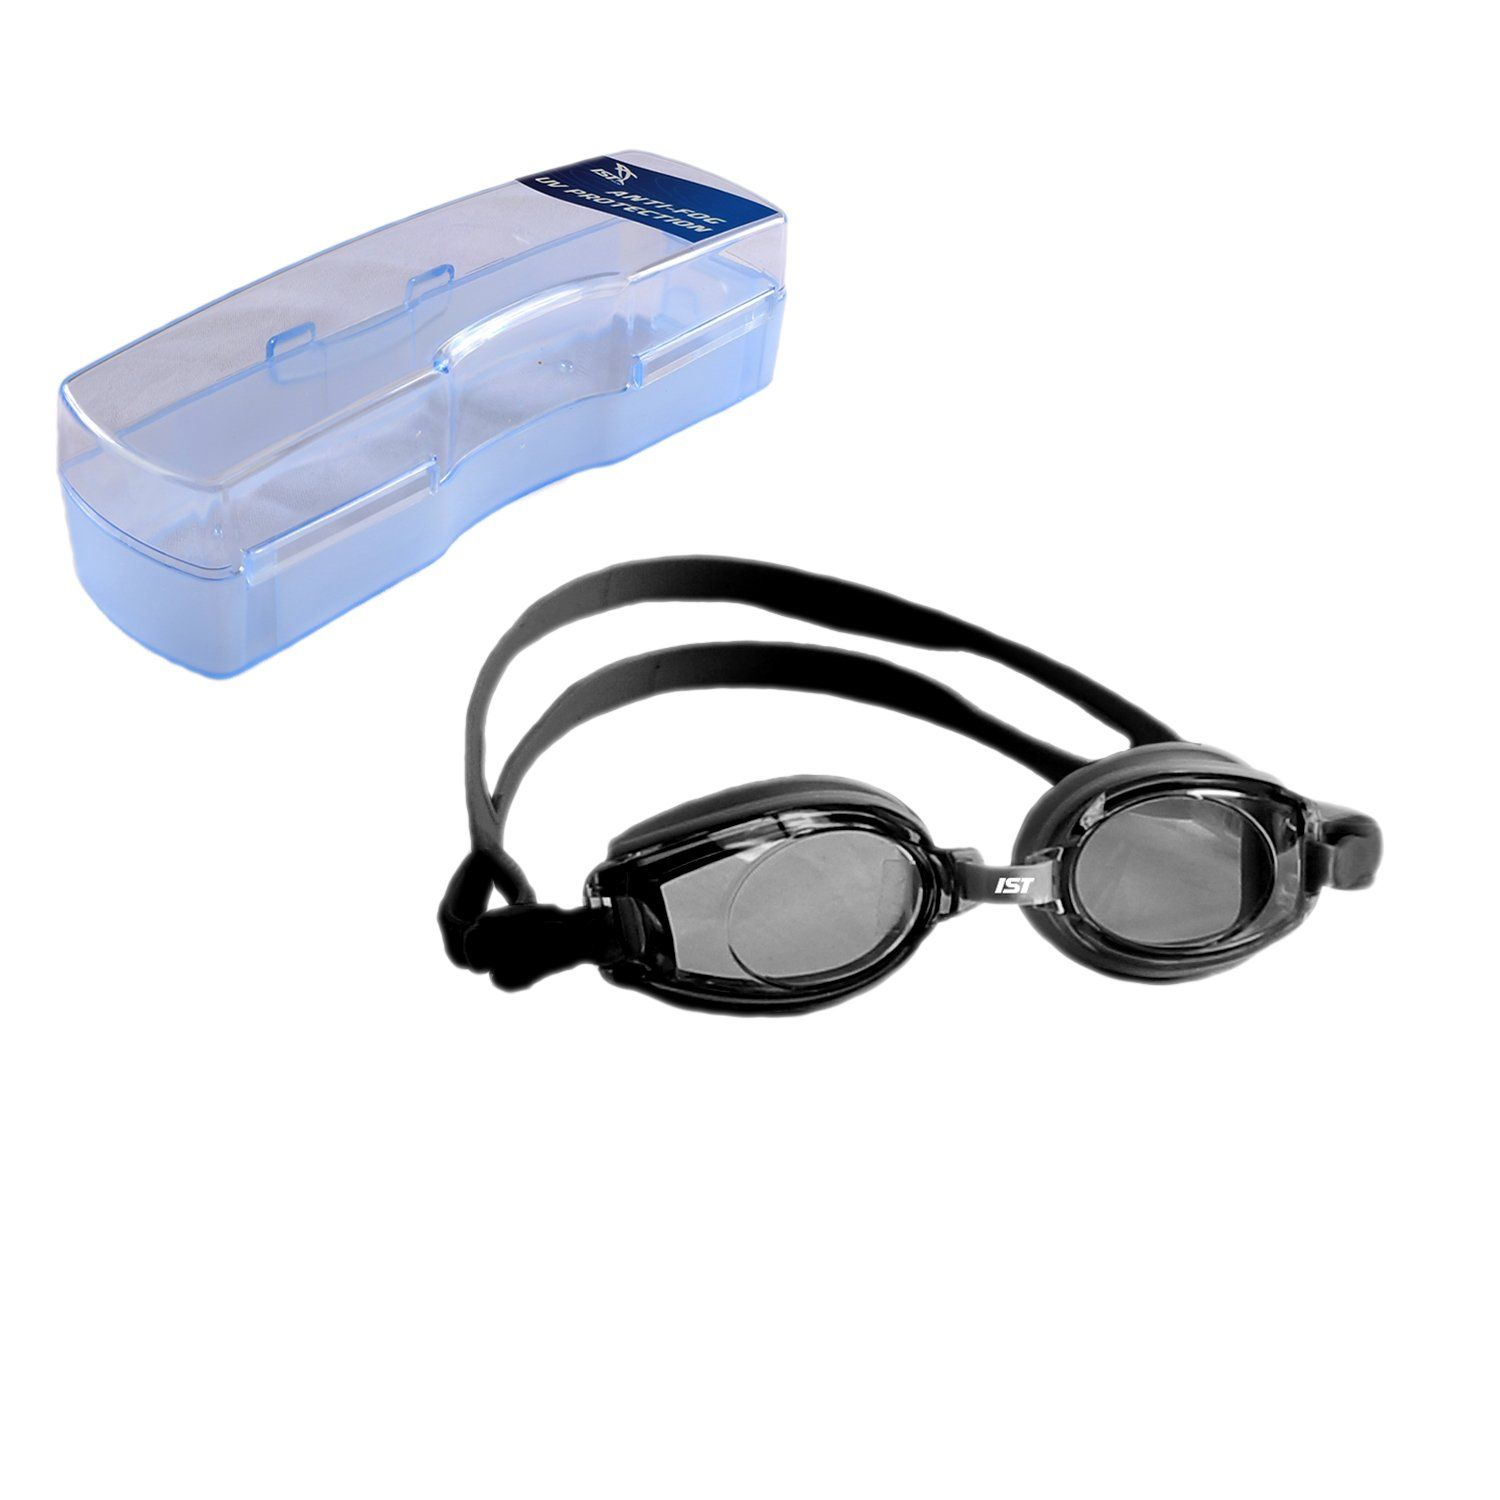 300446a15d2 Best Swim Goggles for Glasses Wearers Reviews on Flipboard. IST RX  prescription swim Goggle with Optical Corrective UV Protection AntiFog  Lenses 250 ...